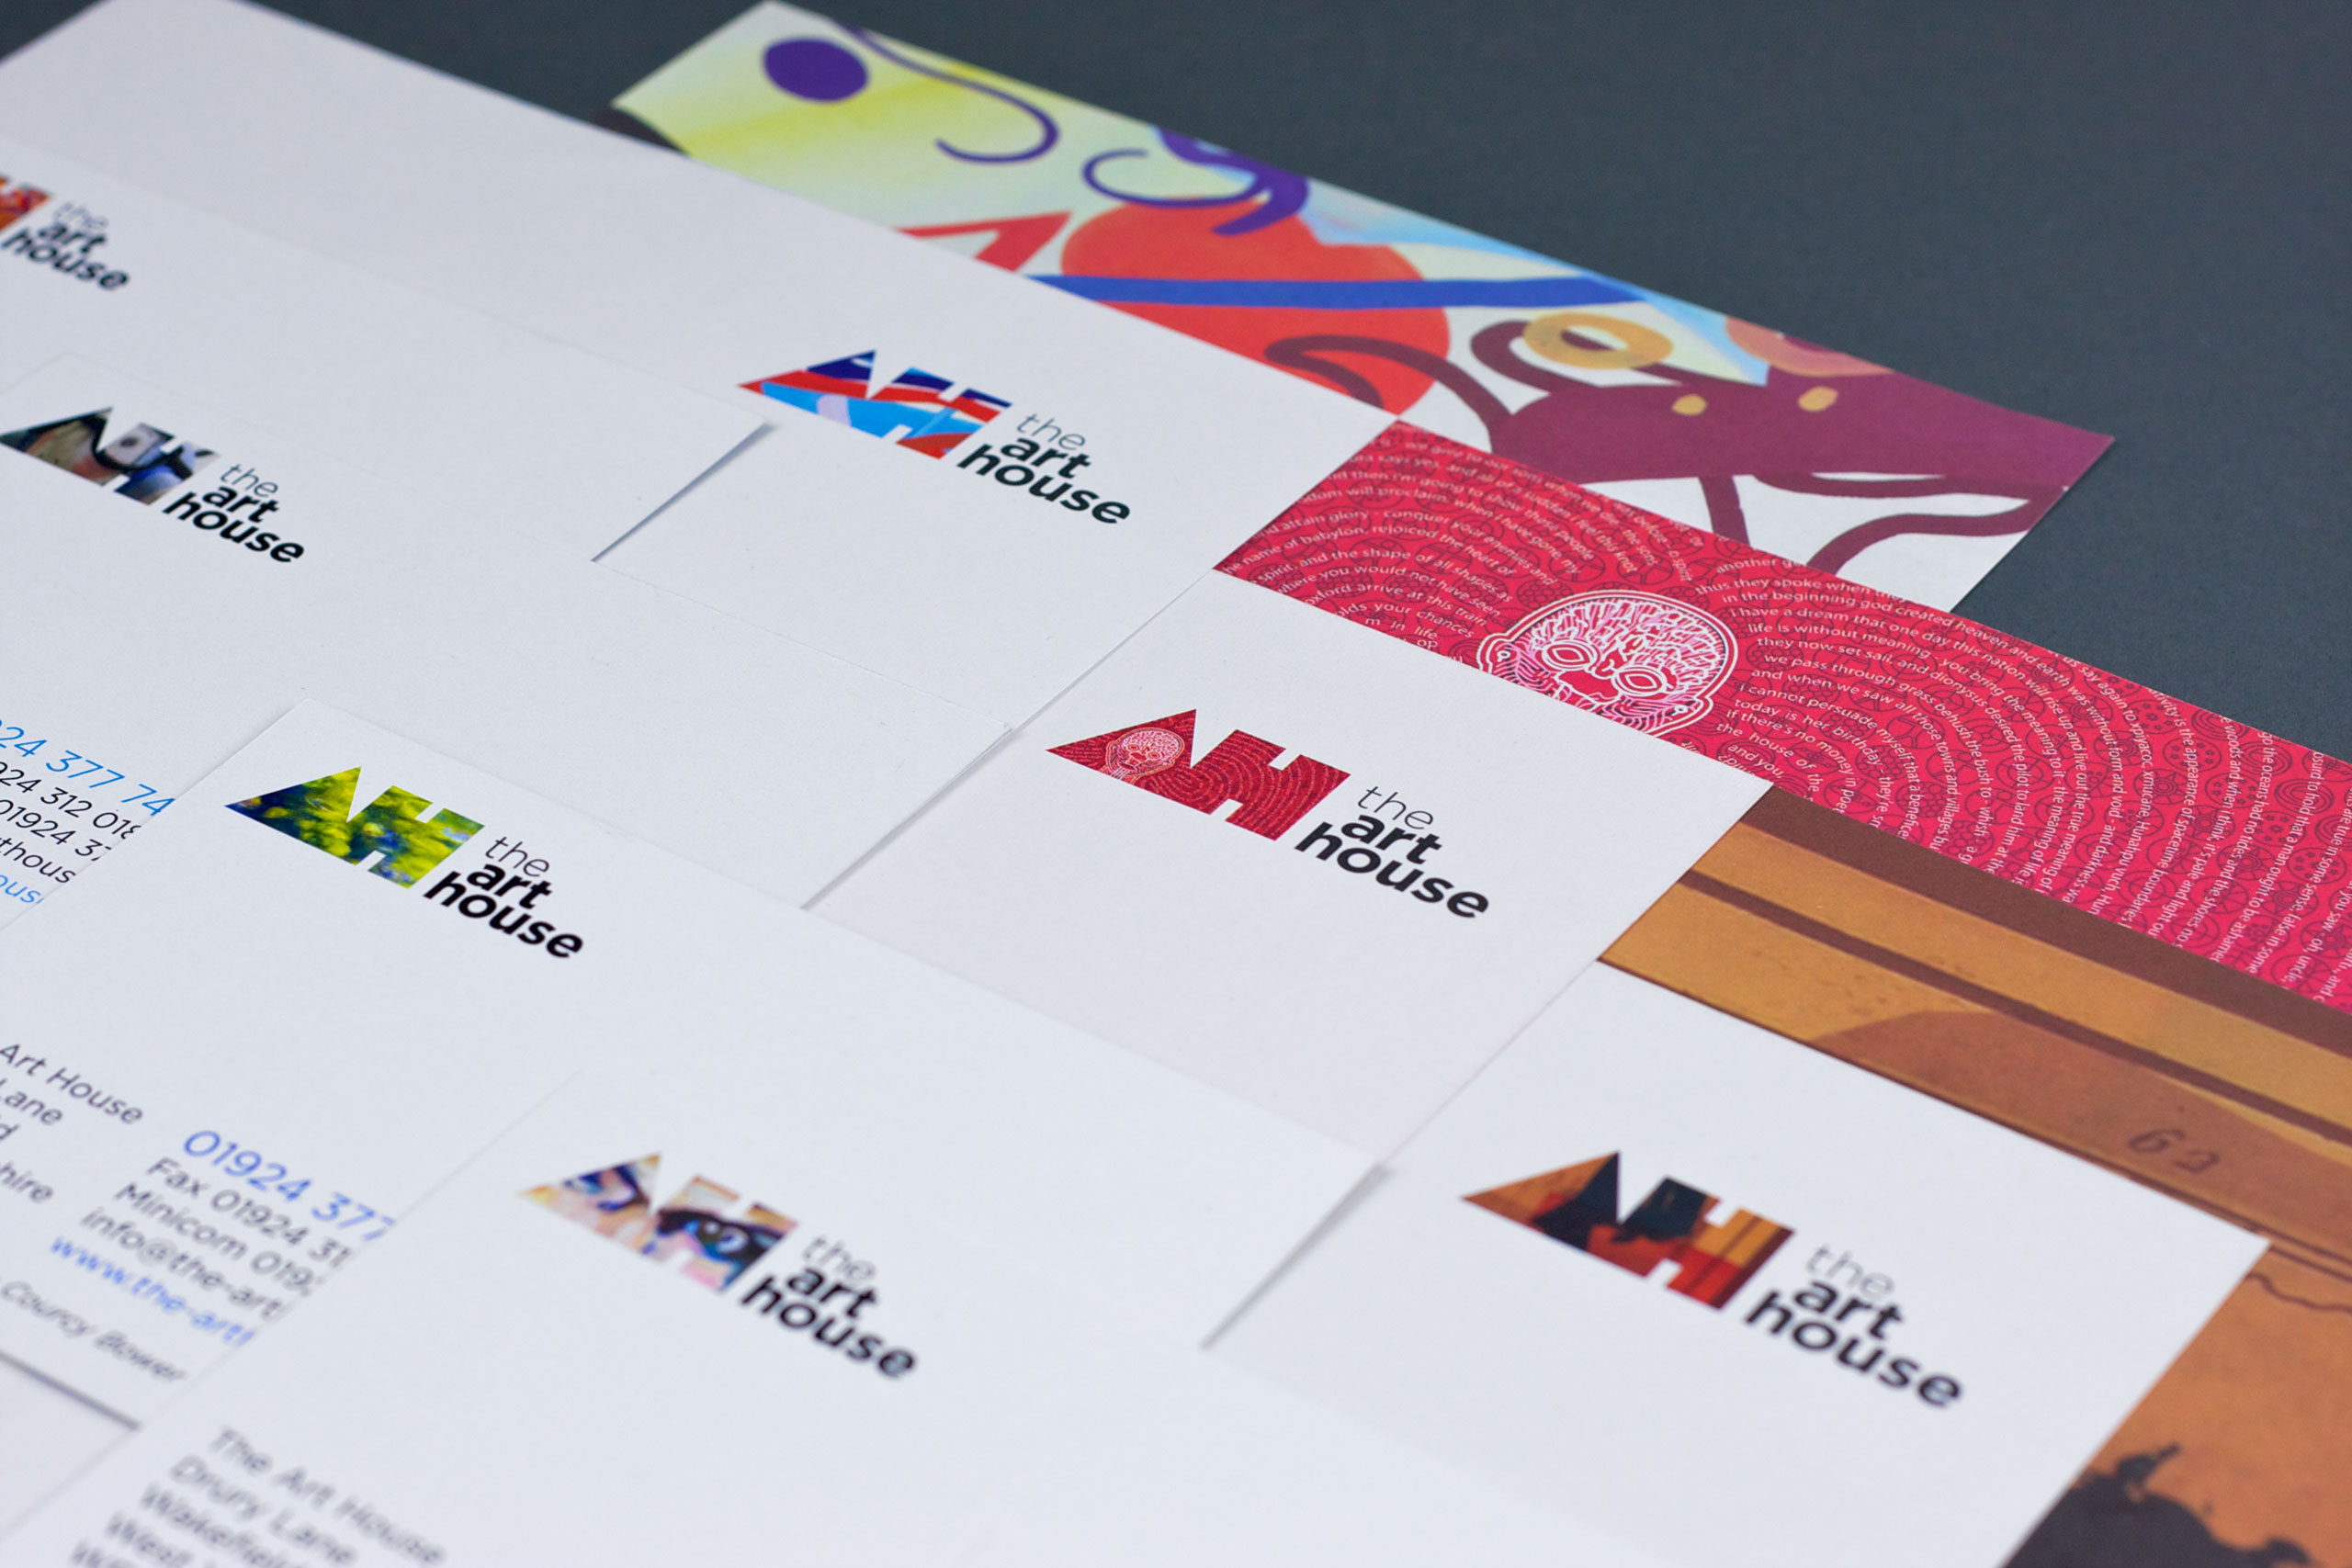 Stationery for The Art House designed by Dan Forster